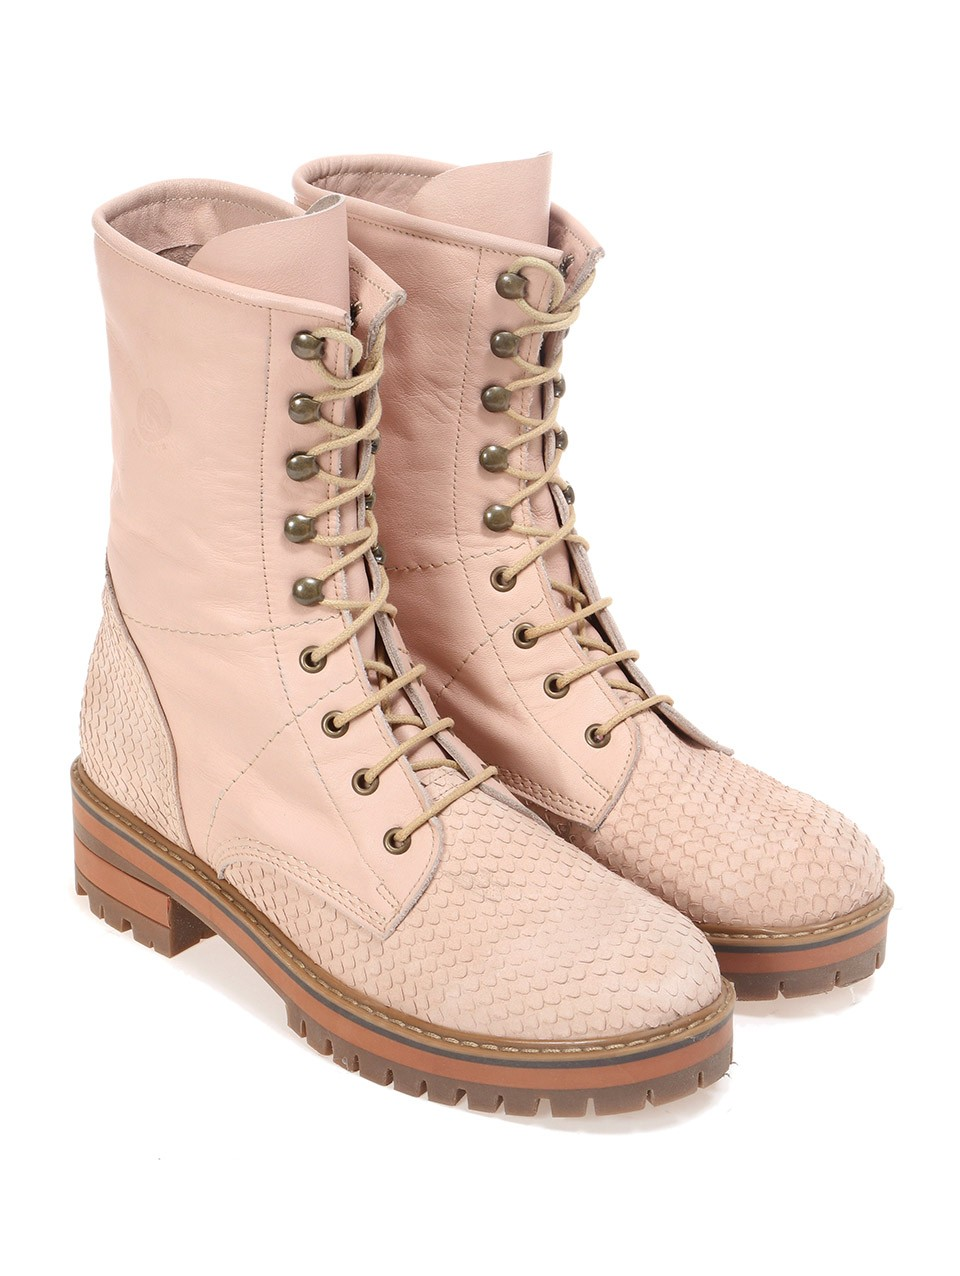 Lace-up Army Boots